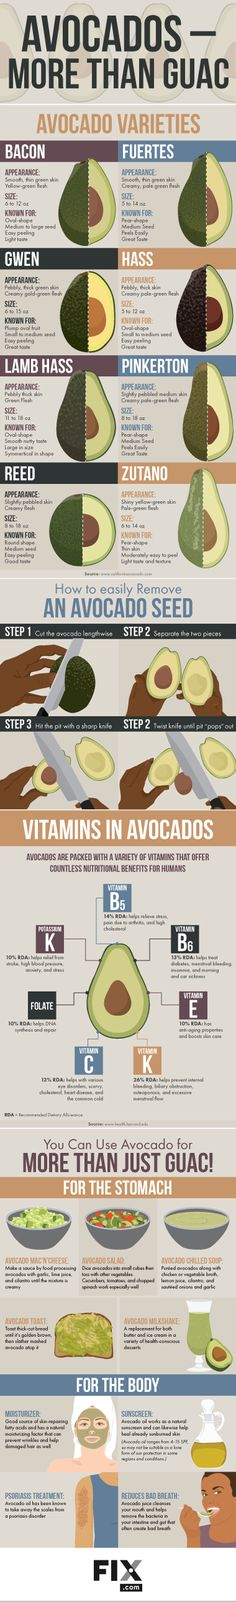 All About Avocados - Varieties, Vitamins and Nutrition, Health Benefits, Weight Loss Benefits, How to Peel and Remove Seed, Alternative Uses [Infographic]